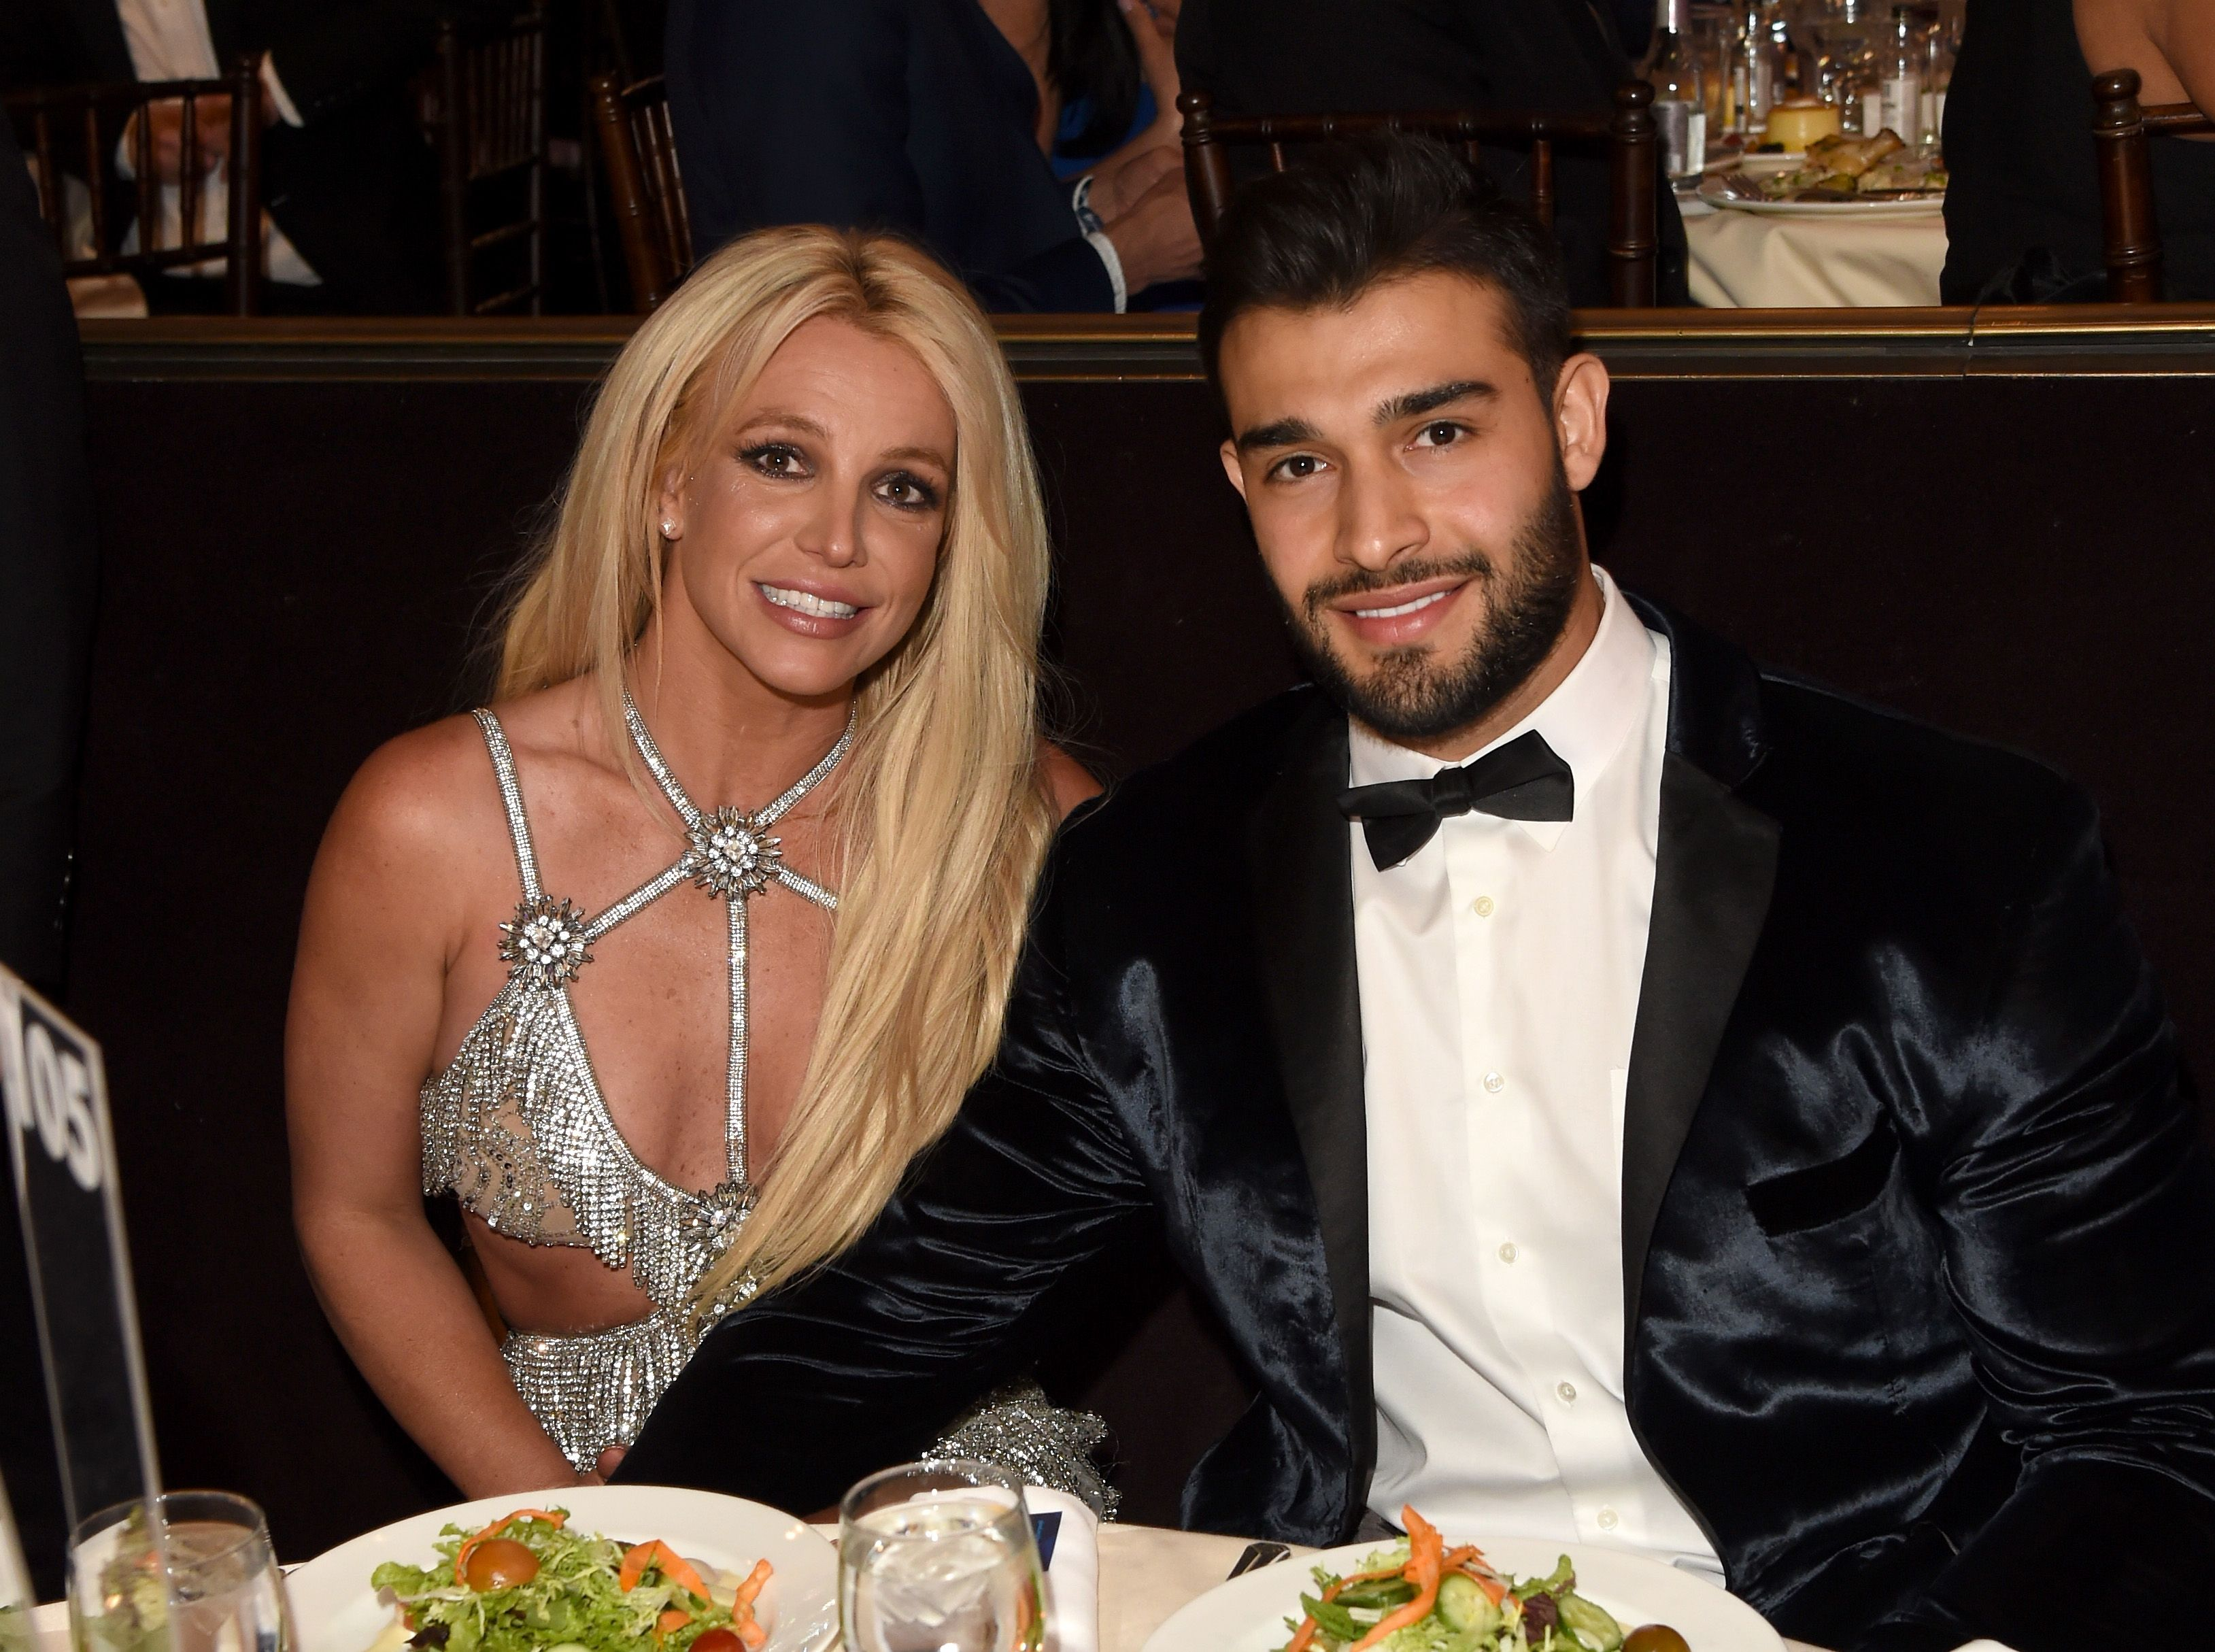 Honoree Britney Spears (L) and Sam Asghari at the 29th Annual GLAAD Media Awards at The Beverly Hilton Hotel on April 12, 2018 | Photo: Getty Images